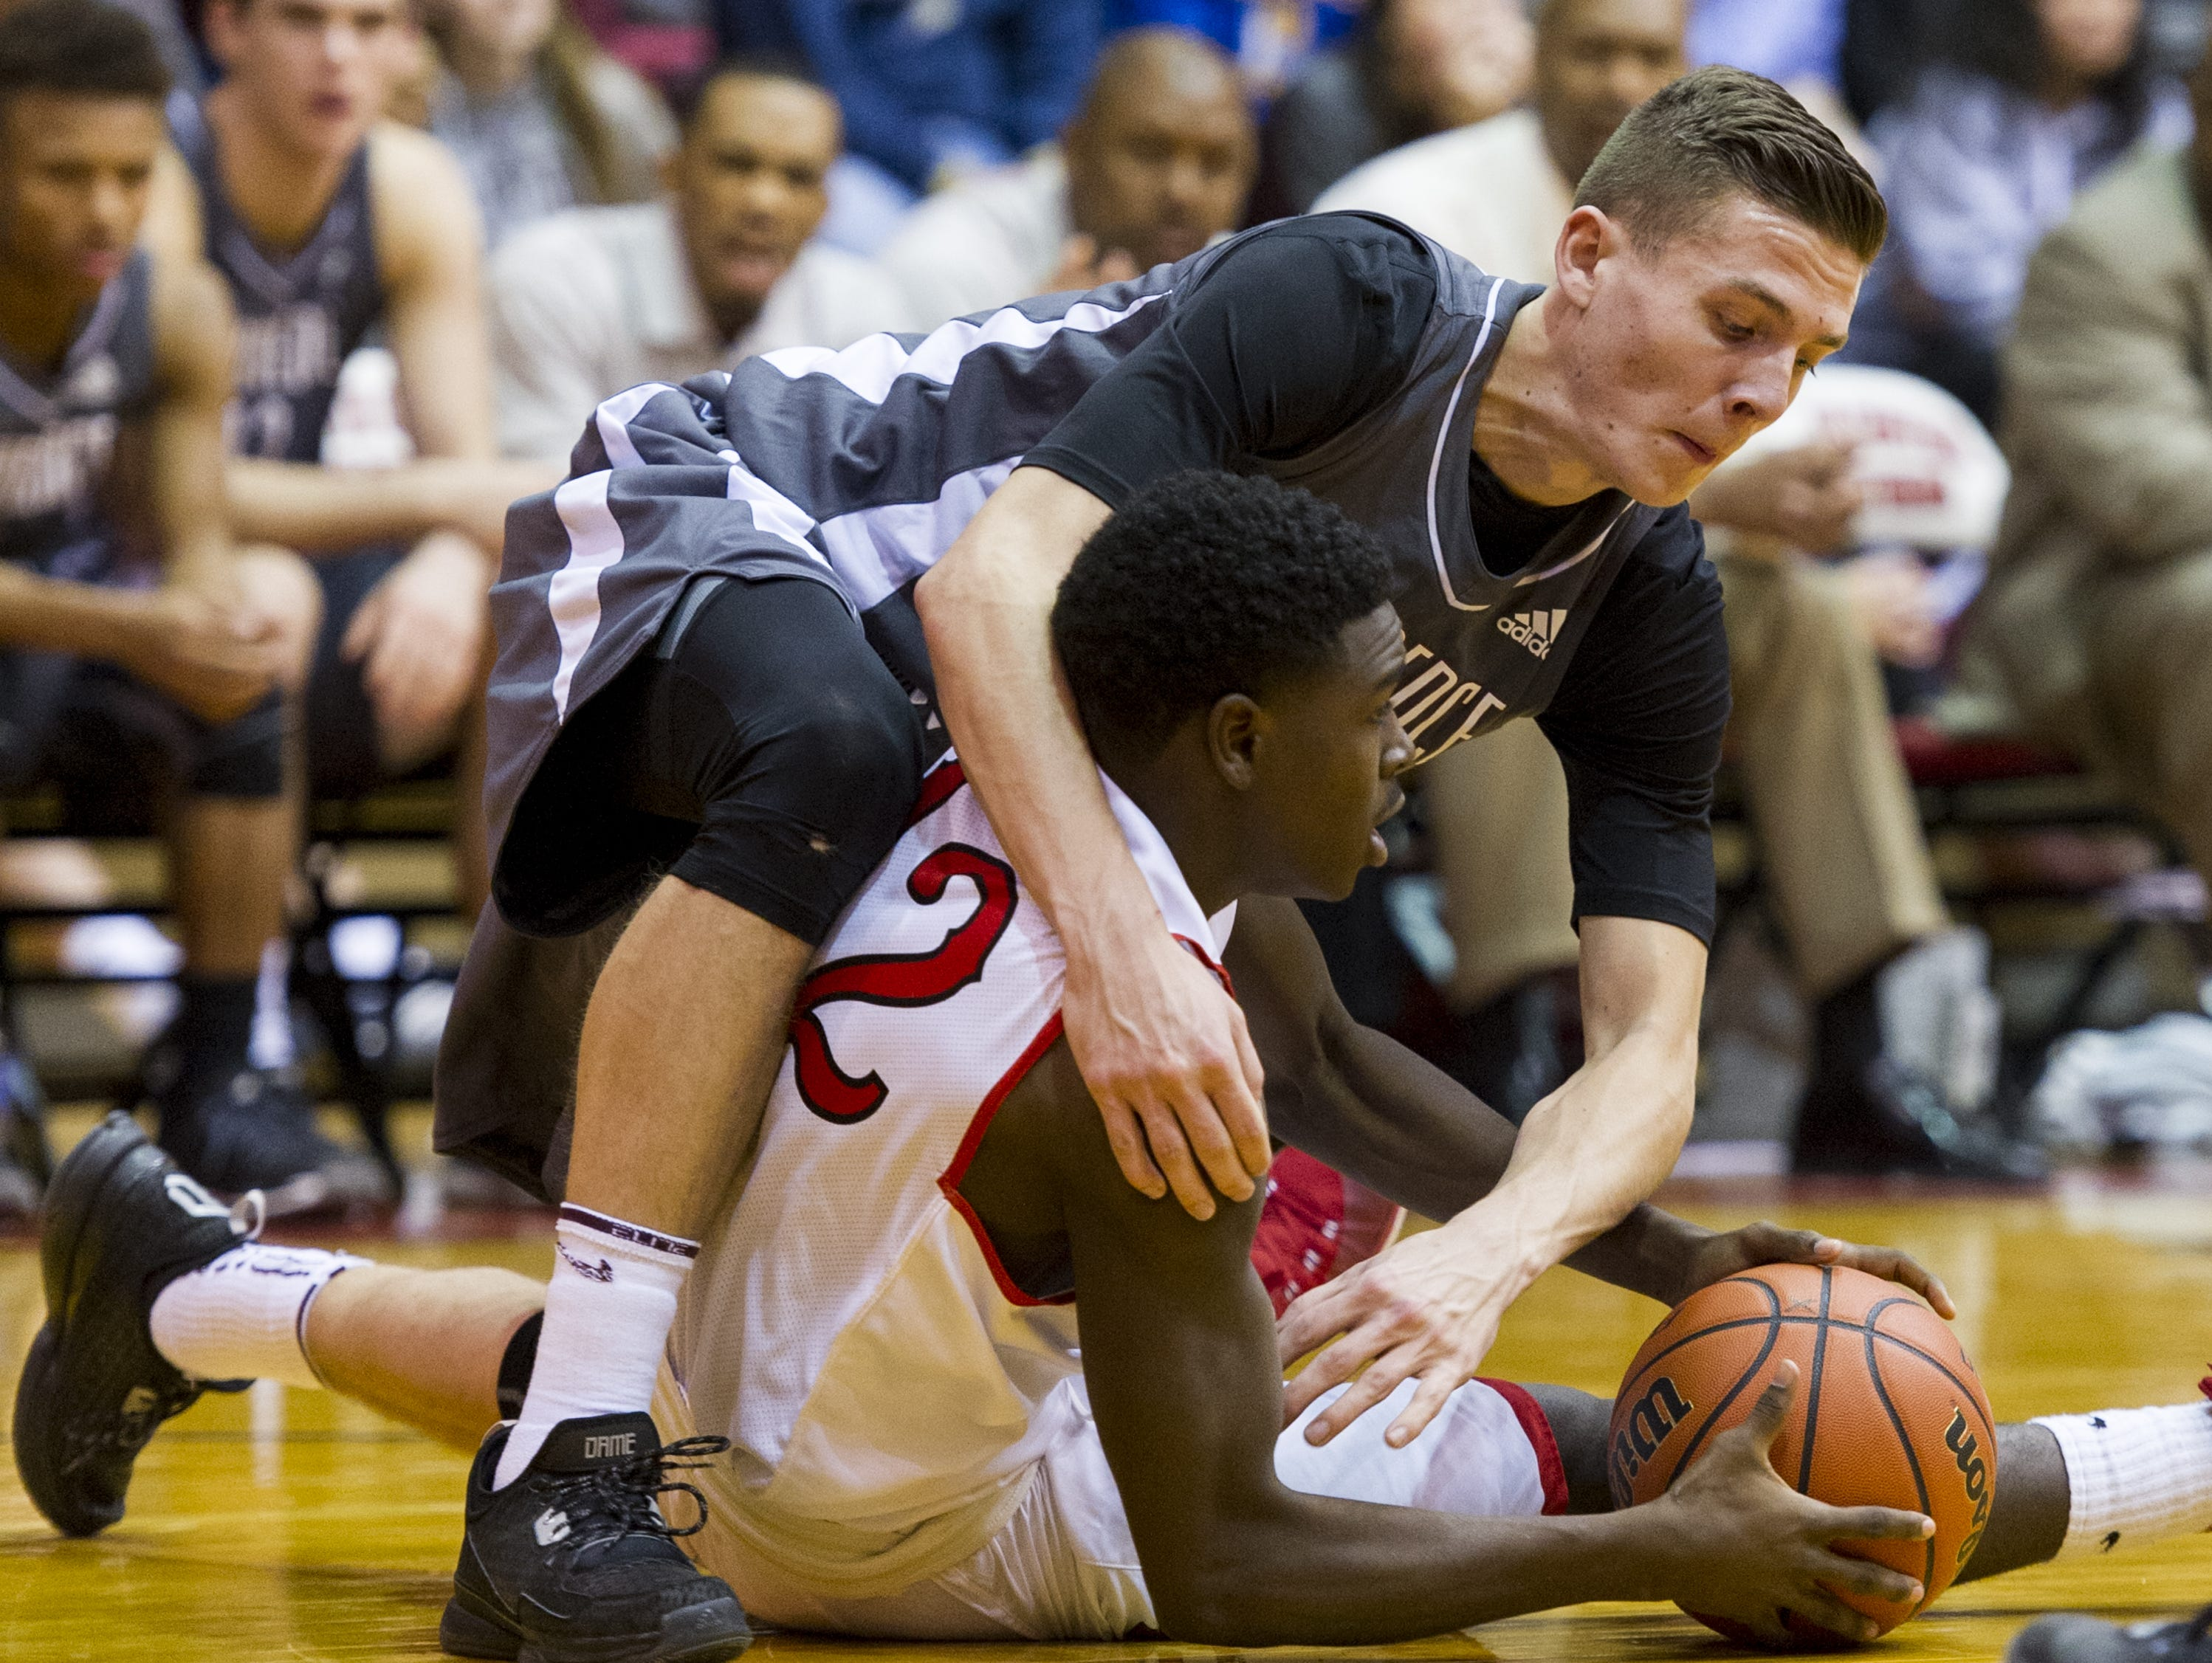 Lawrence Central High School senior Kyle Guy (24) goes after a loose ball against North Central High School sophomore Donald Johnson (12) during the first half of action in an IHSAA high school boys basketball game at North Central High School, Tuesday, Jan. 12, 2016.